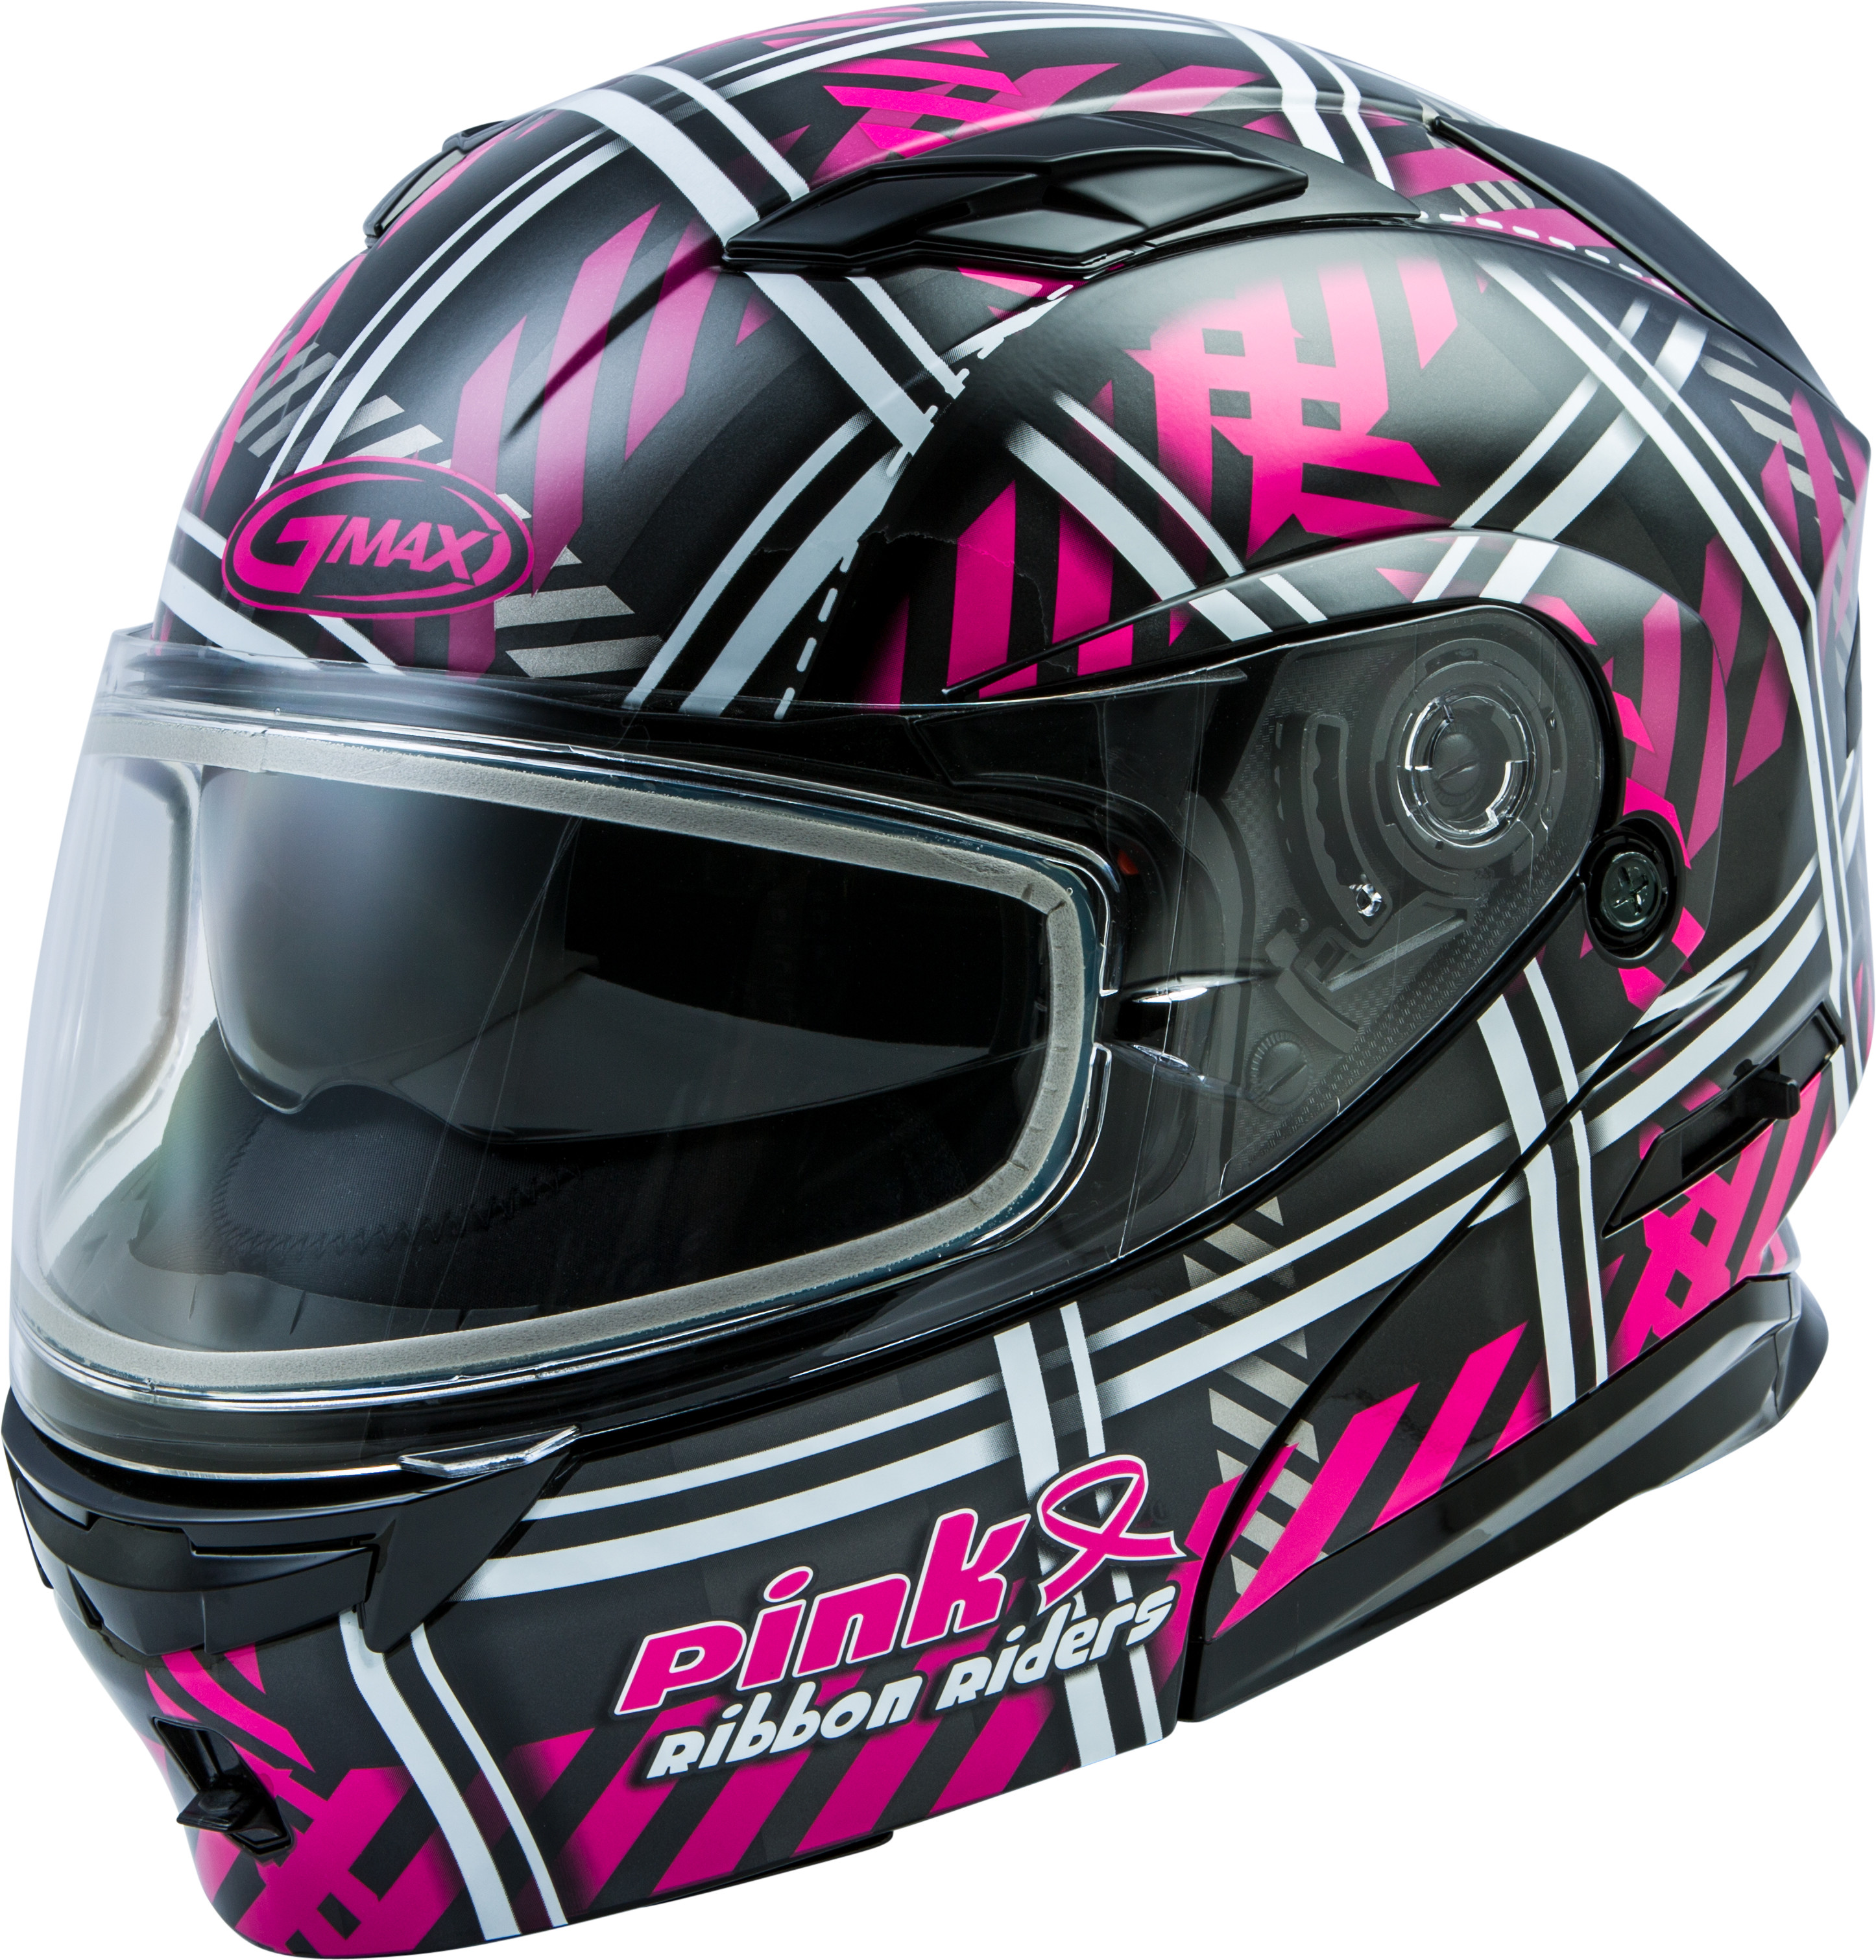 Details about GMAX MD-01S Modular Pink Ribbon Riders Snow Helmet Cold  Weather Snowmobile UTV